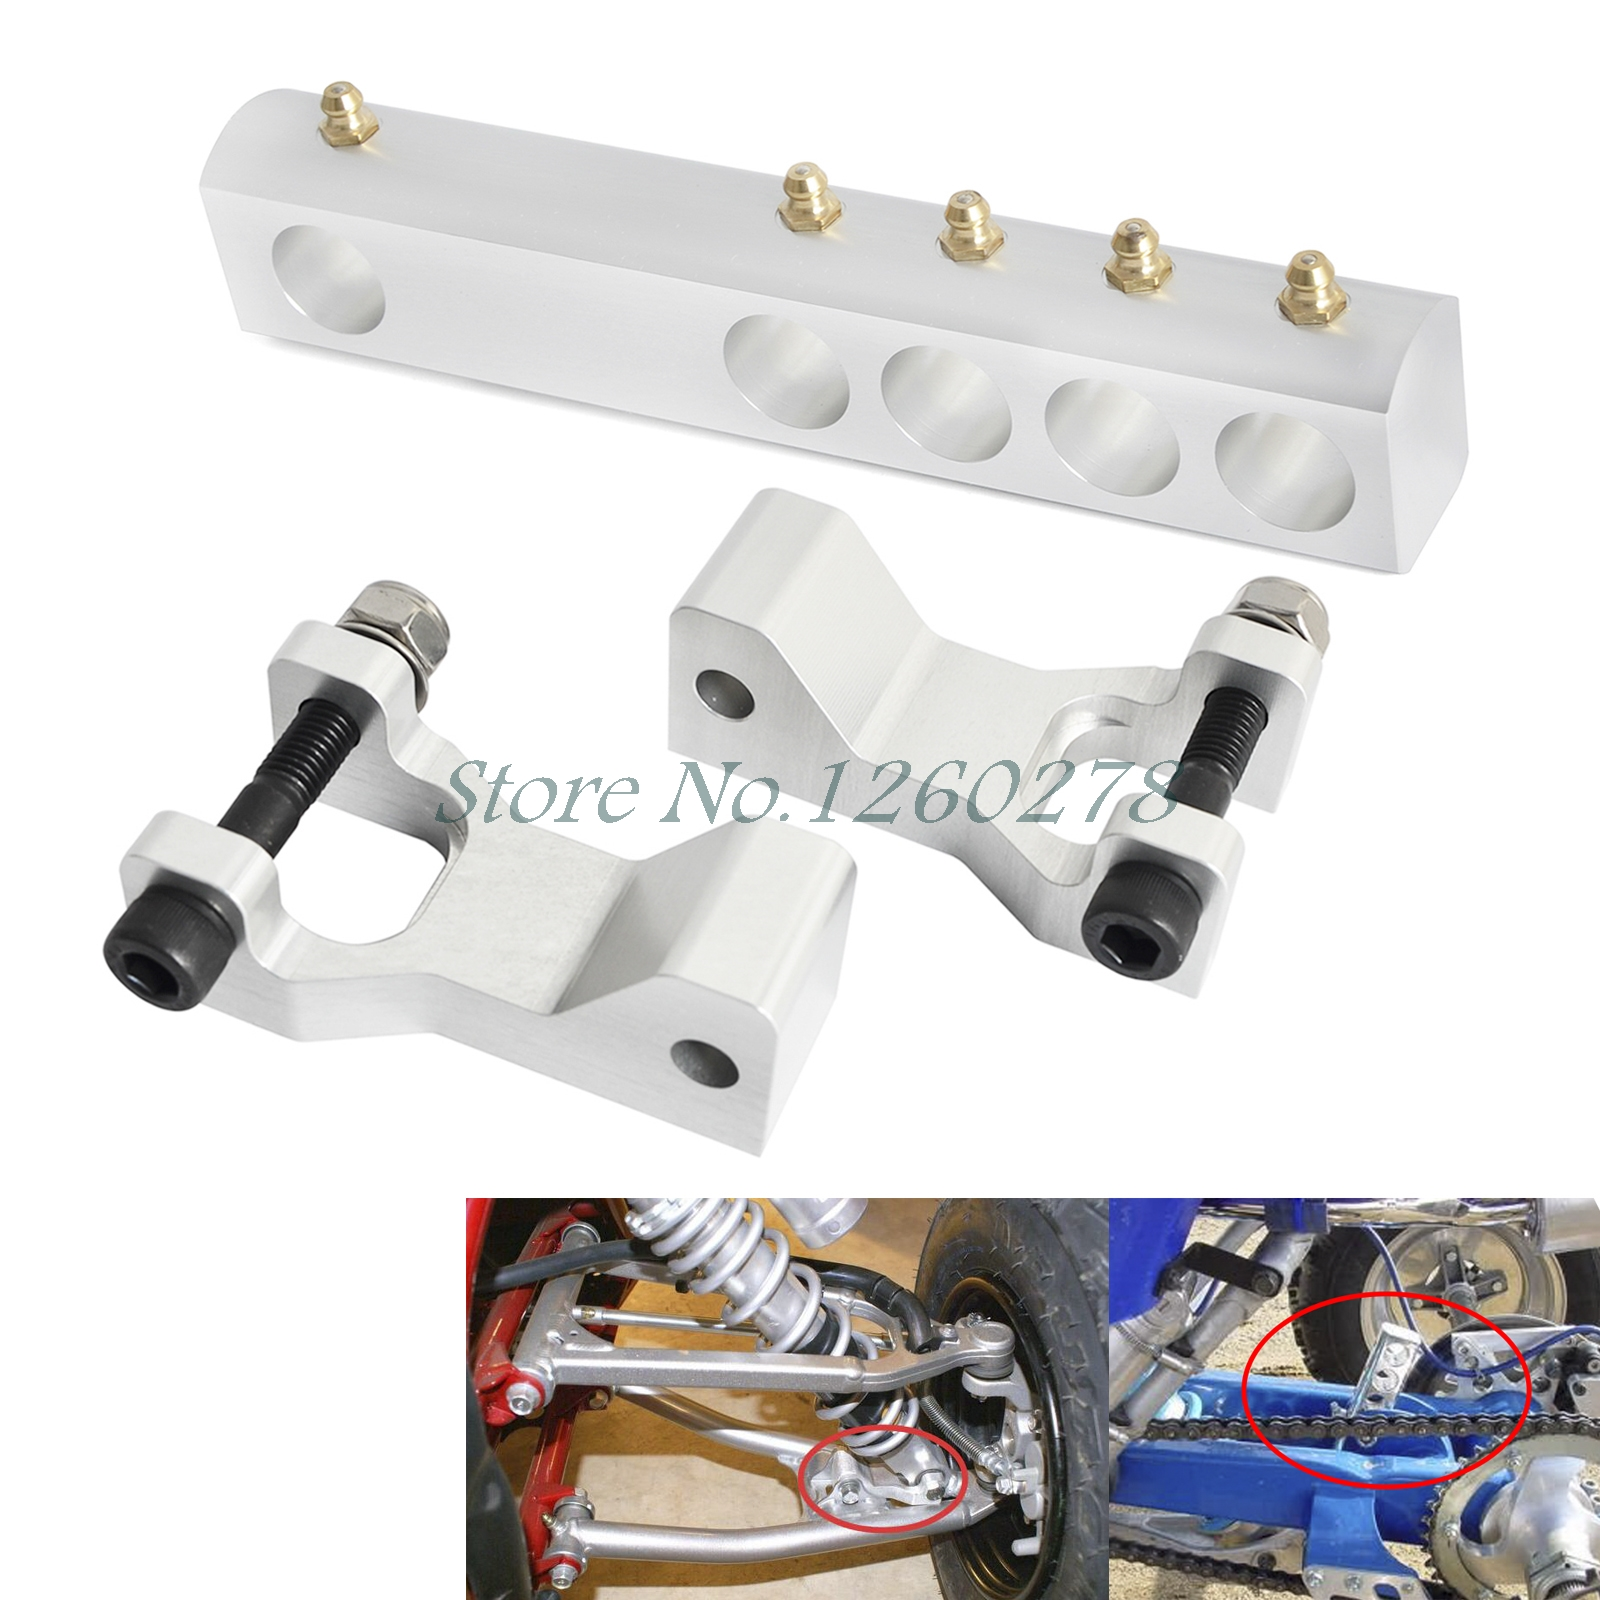 Sliver Front Rear Lowering Kit For Yamaha Warrior 350 YFM350X 1987-2004 Banshee 350 YFZ350 1987-2008 Accessories image